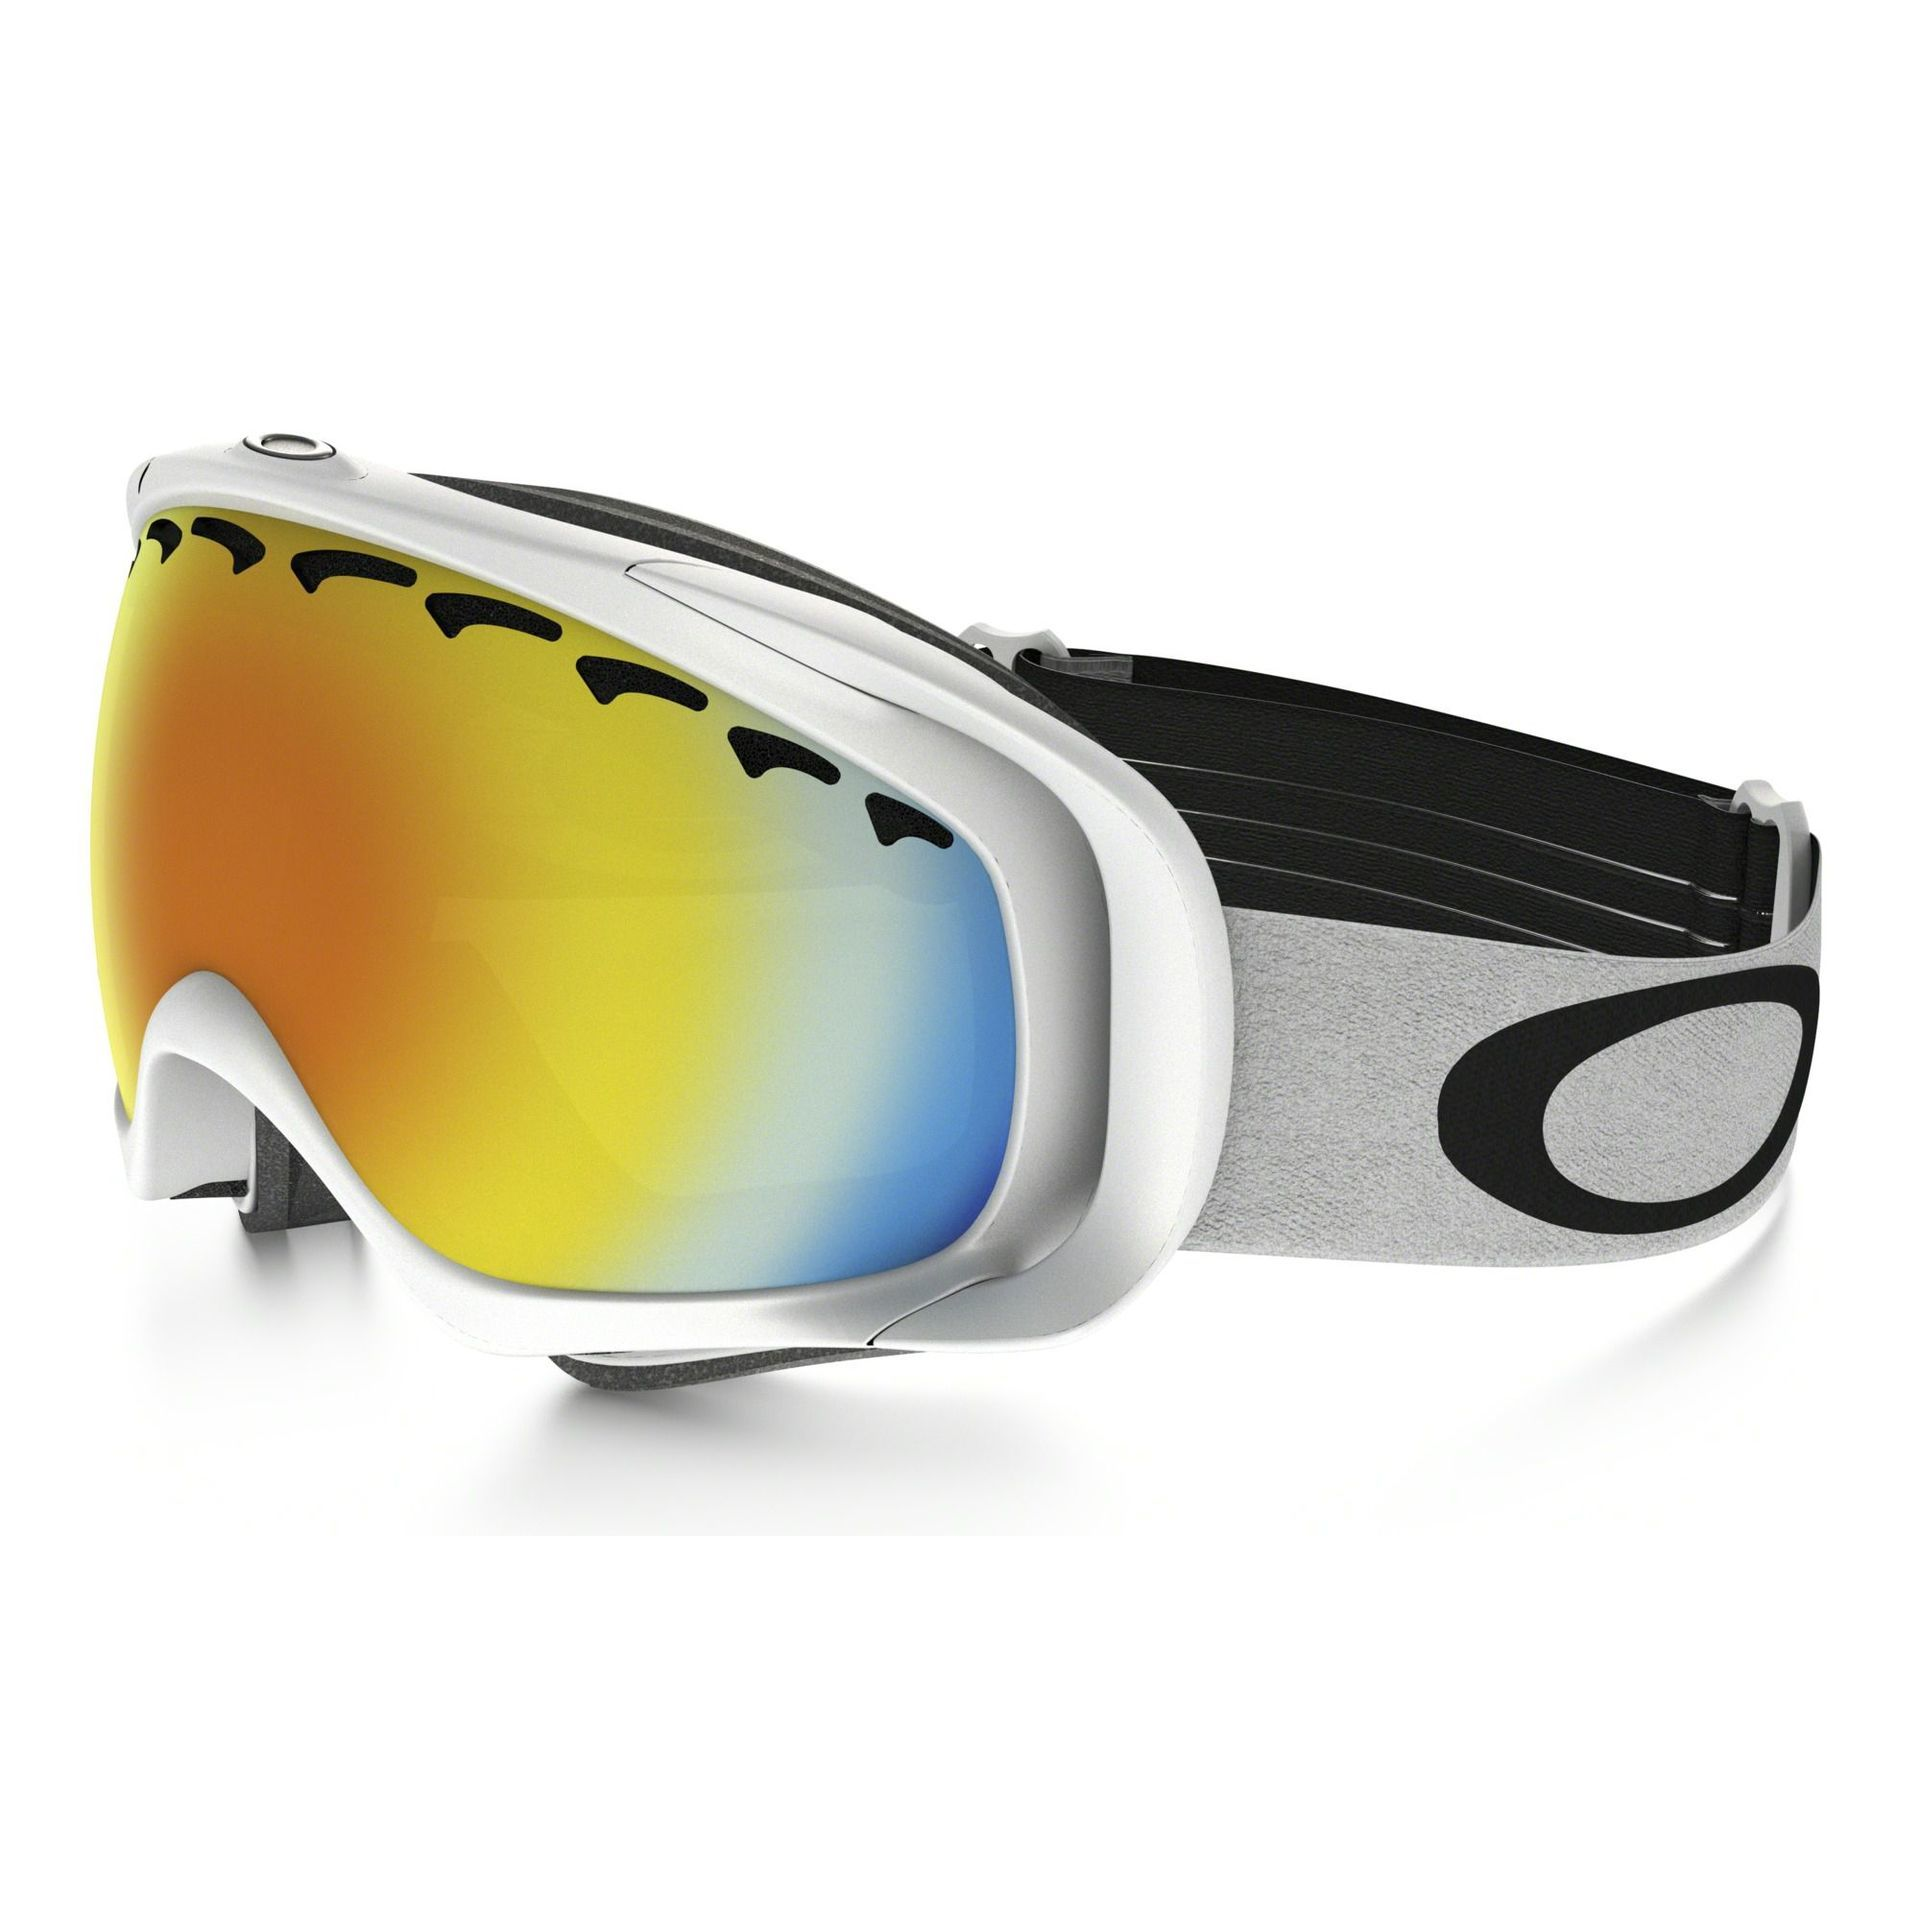 GOGLE SNOW OAKLEY CROWBAR MATTE WHITE|FIRE IRIDIUM